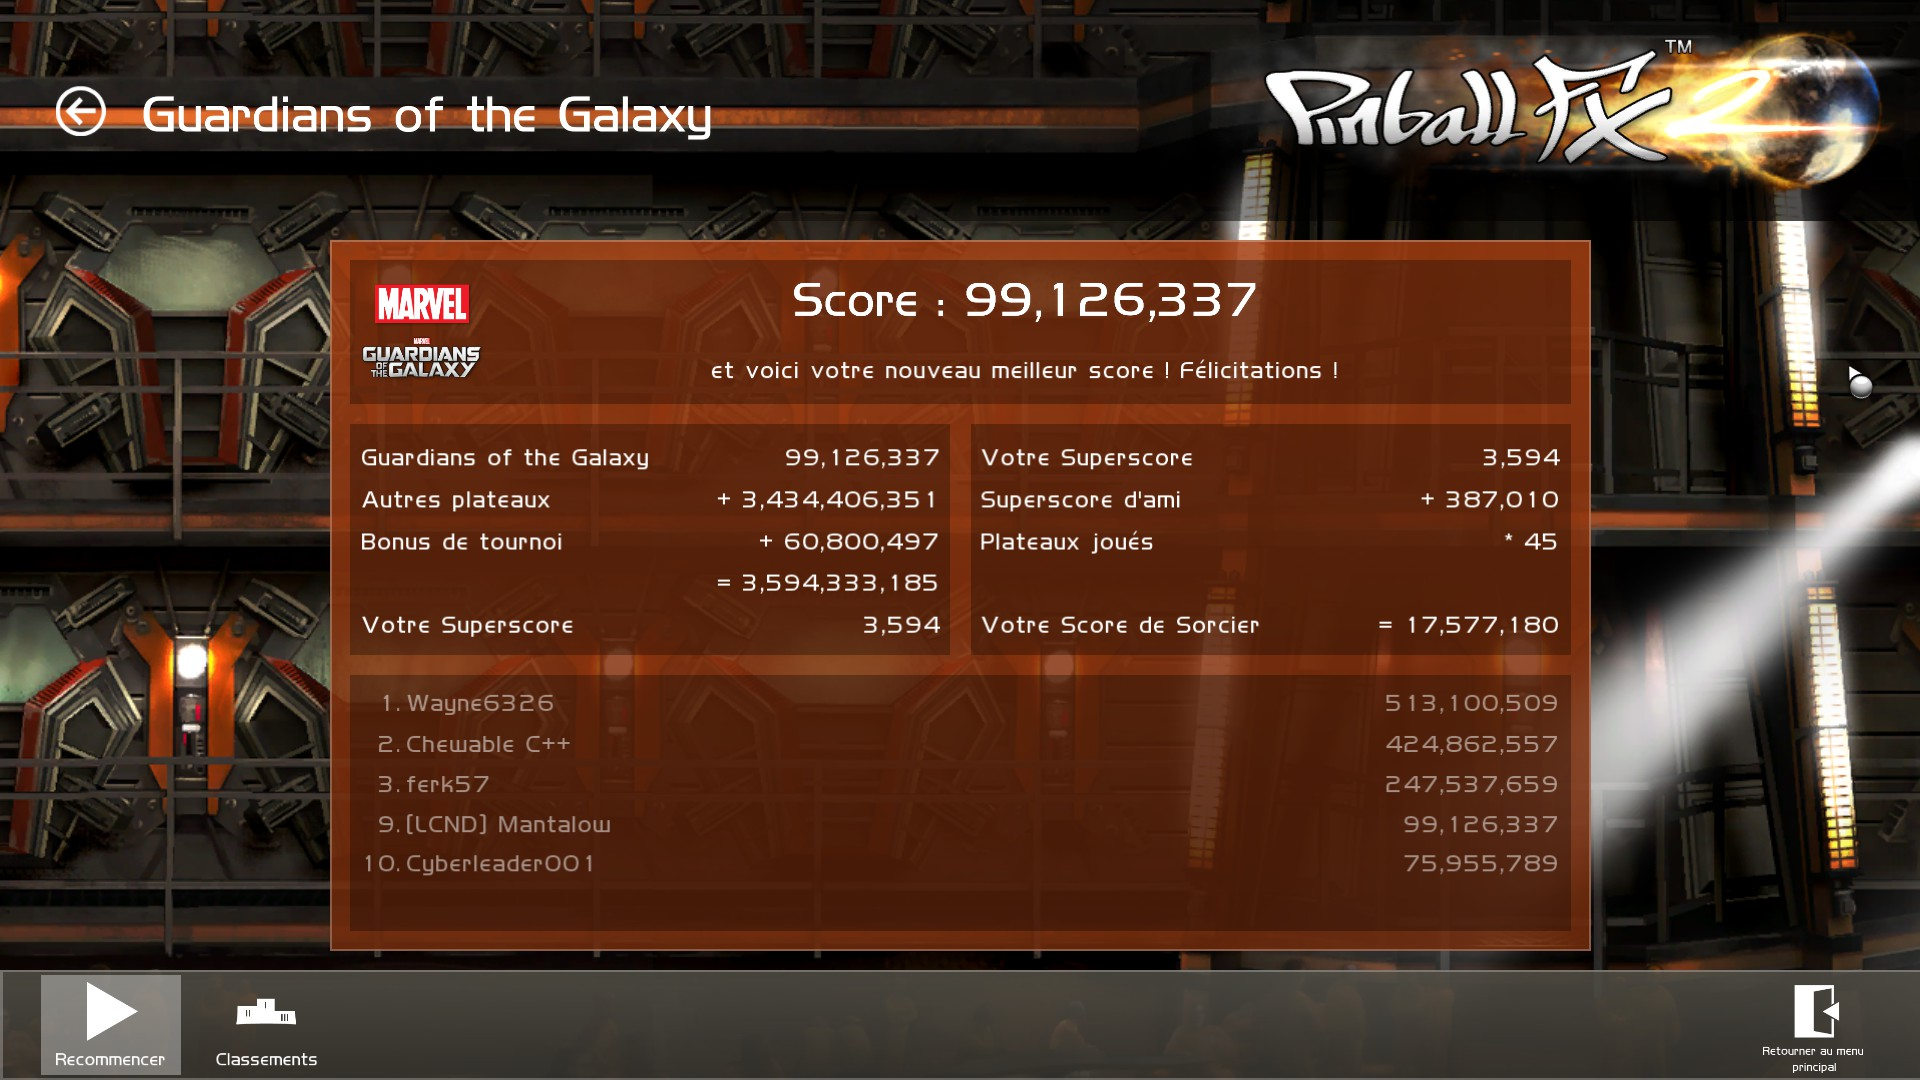 Mantalow: Pinball FX 2: Marvel Guardians of the Galaxy (PC) 99,126,337 points on 2015-03-05 09:57:31